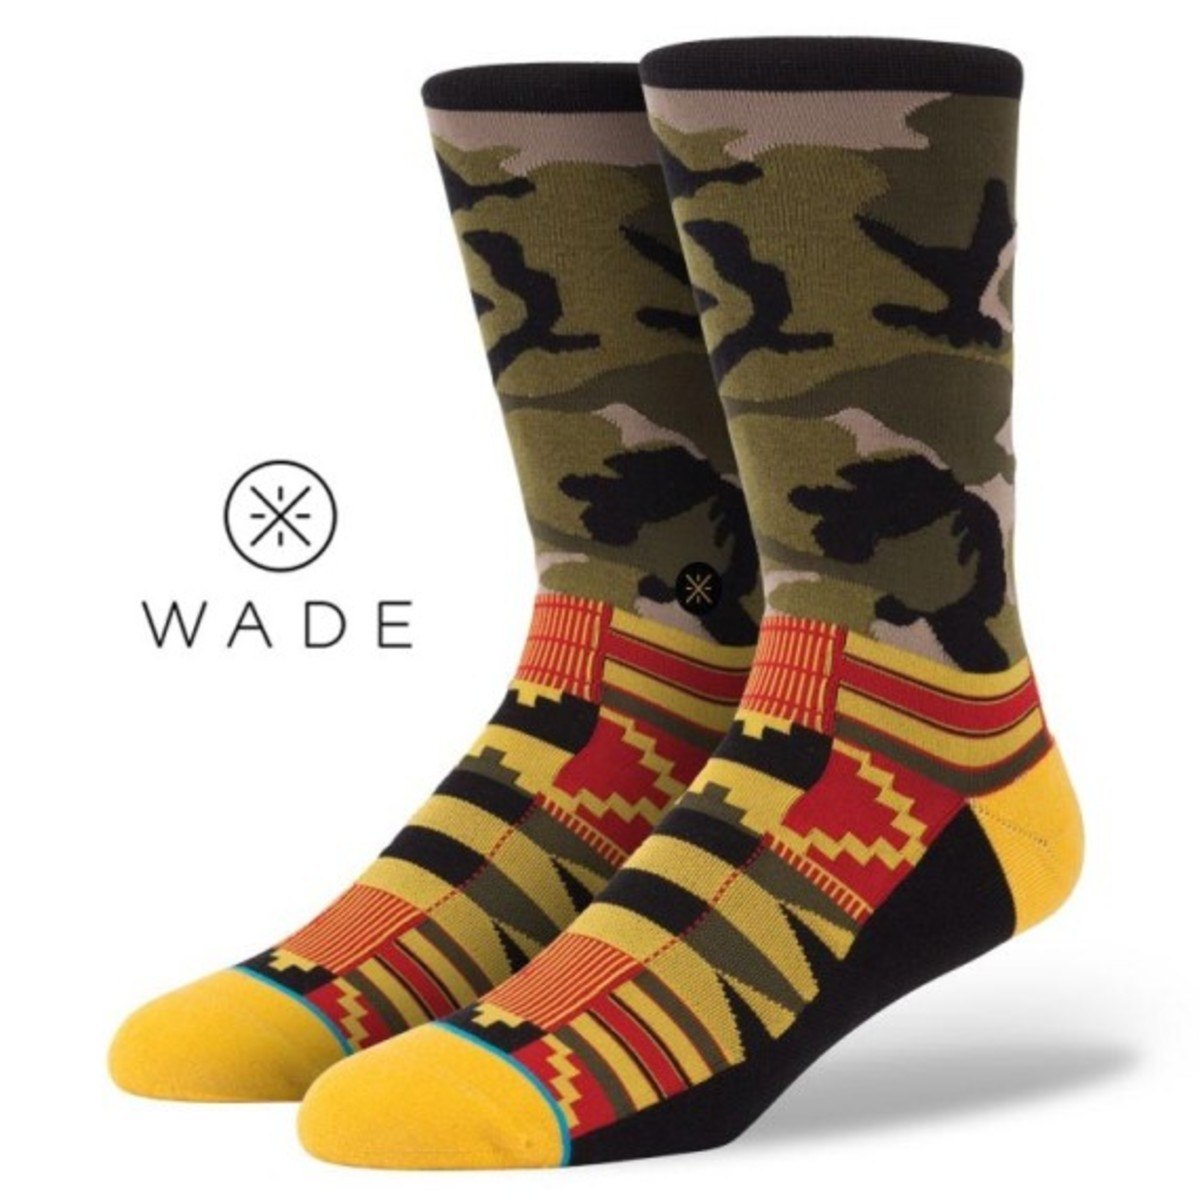 Dwyane Wade x Stance Socks – Summer 2014 Collection - 5